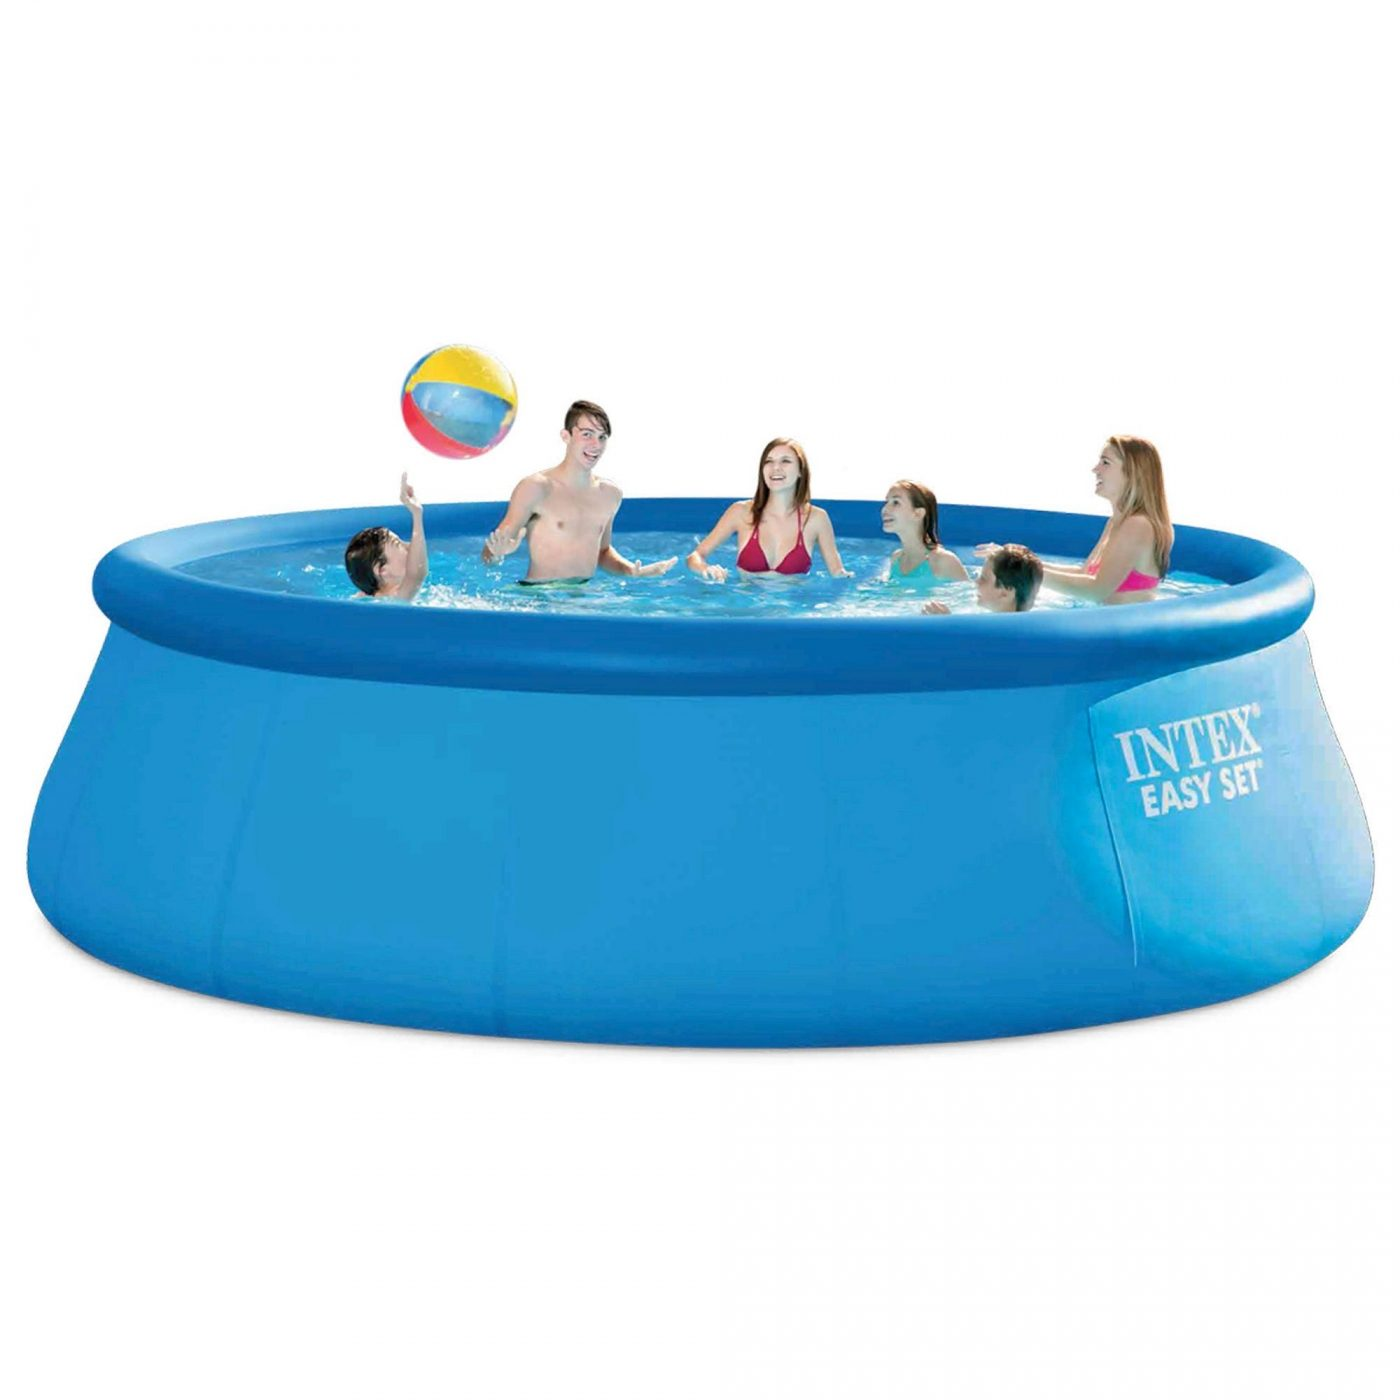 Intex Piscinas Acessorios Piscina Easy Set 457 X 122 Cm Intex Por 274 95 En